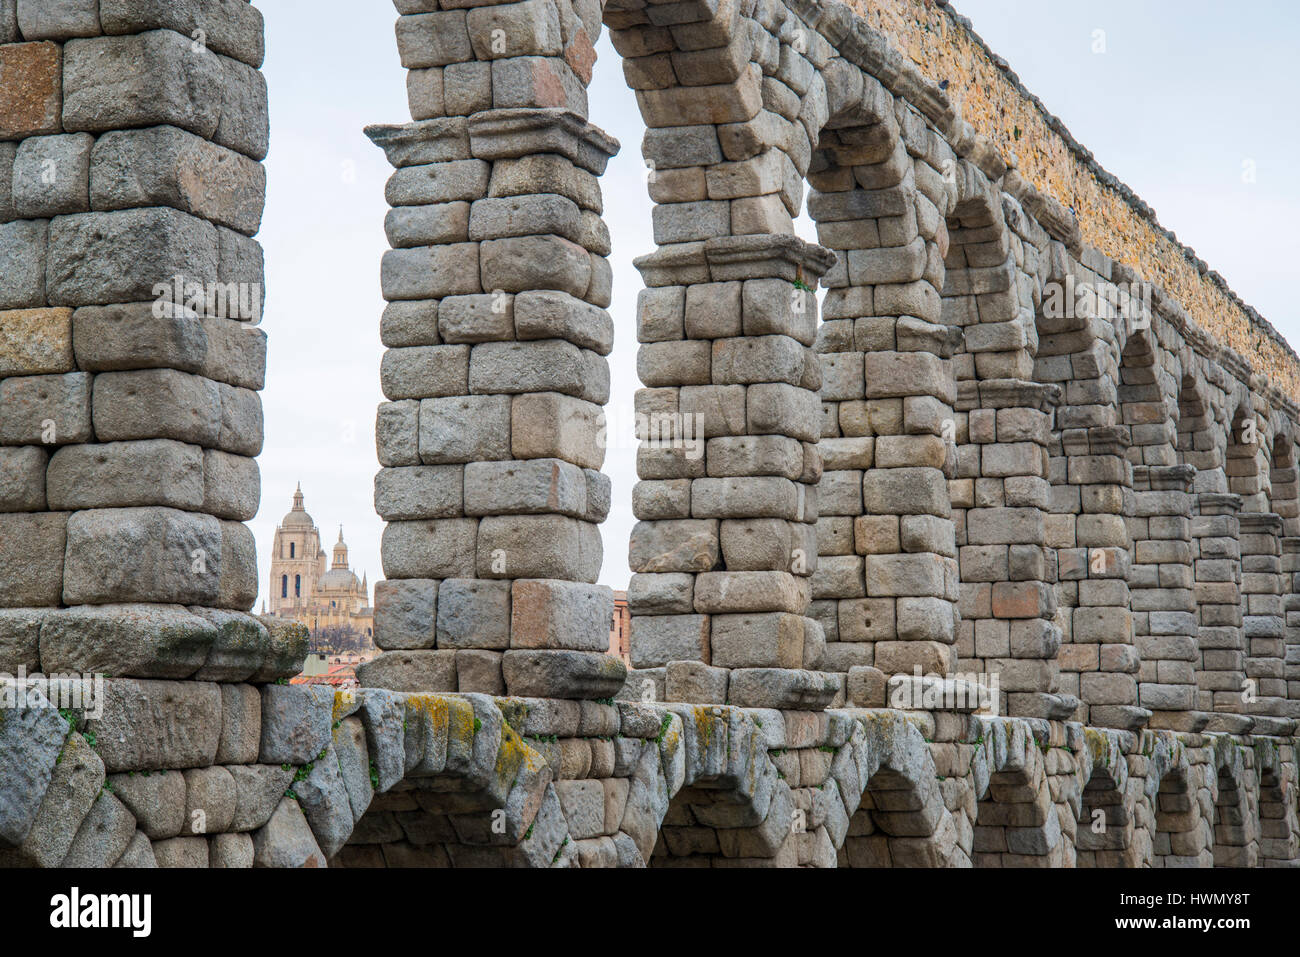 Cathedral viewed through the arches of the Roman Aqueduct. Segovia, Spain. - Stock Image